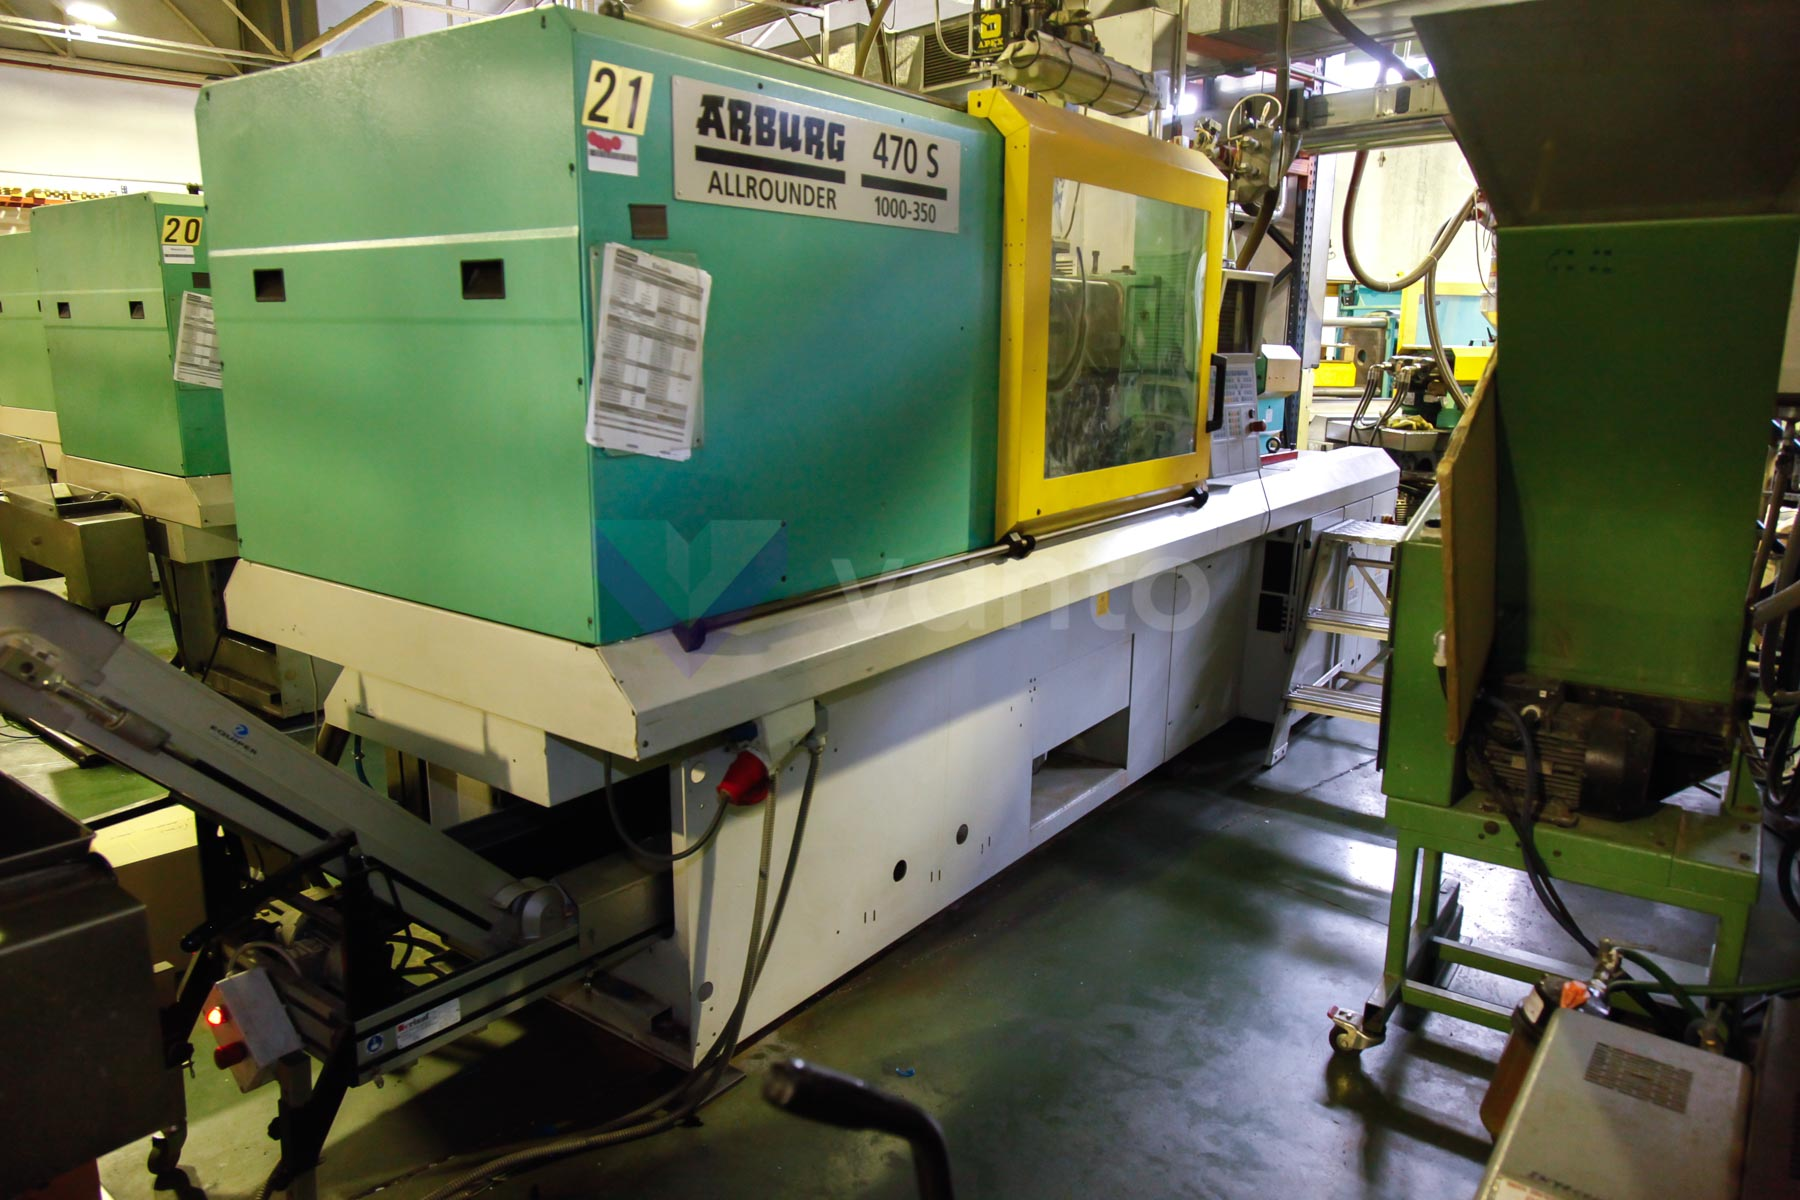 ARBURG 470 S ALLROUNDER 1000 - 350 100t injection molding machine (2002) id4539